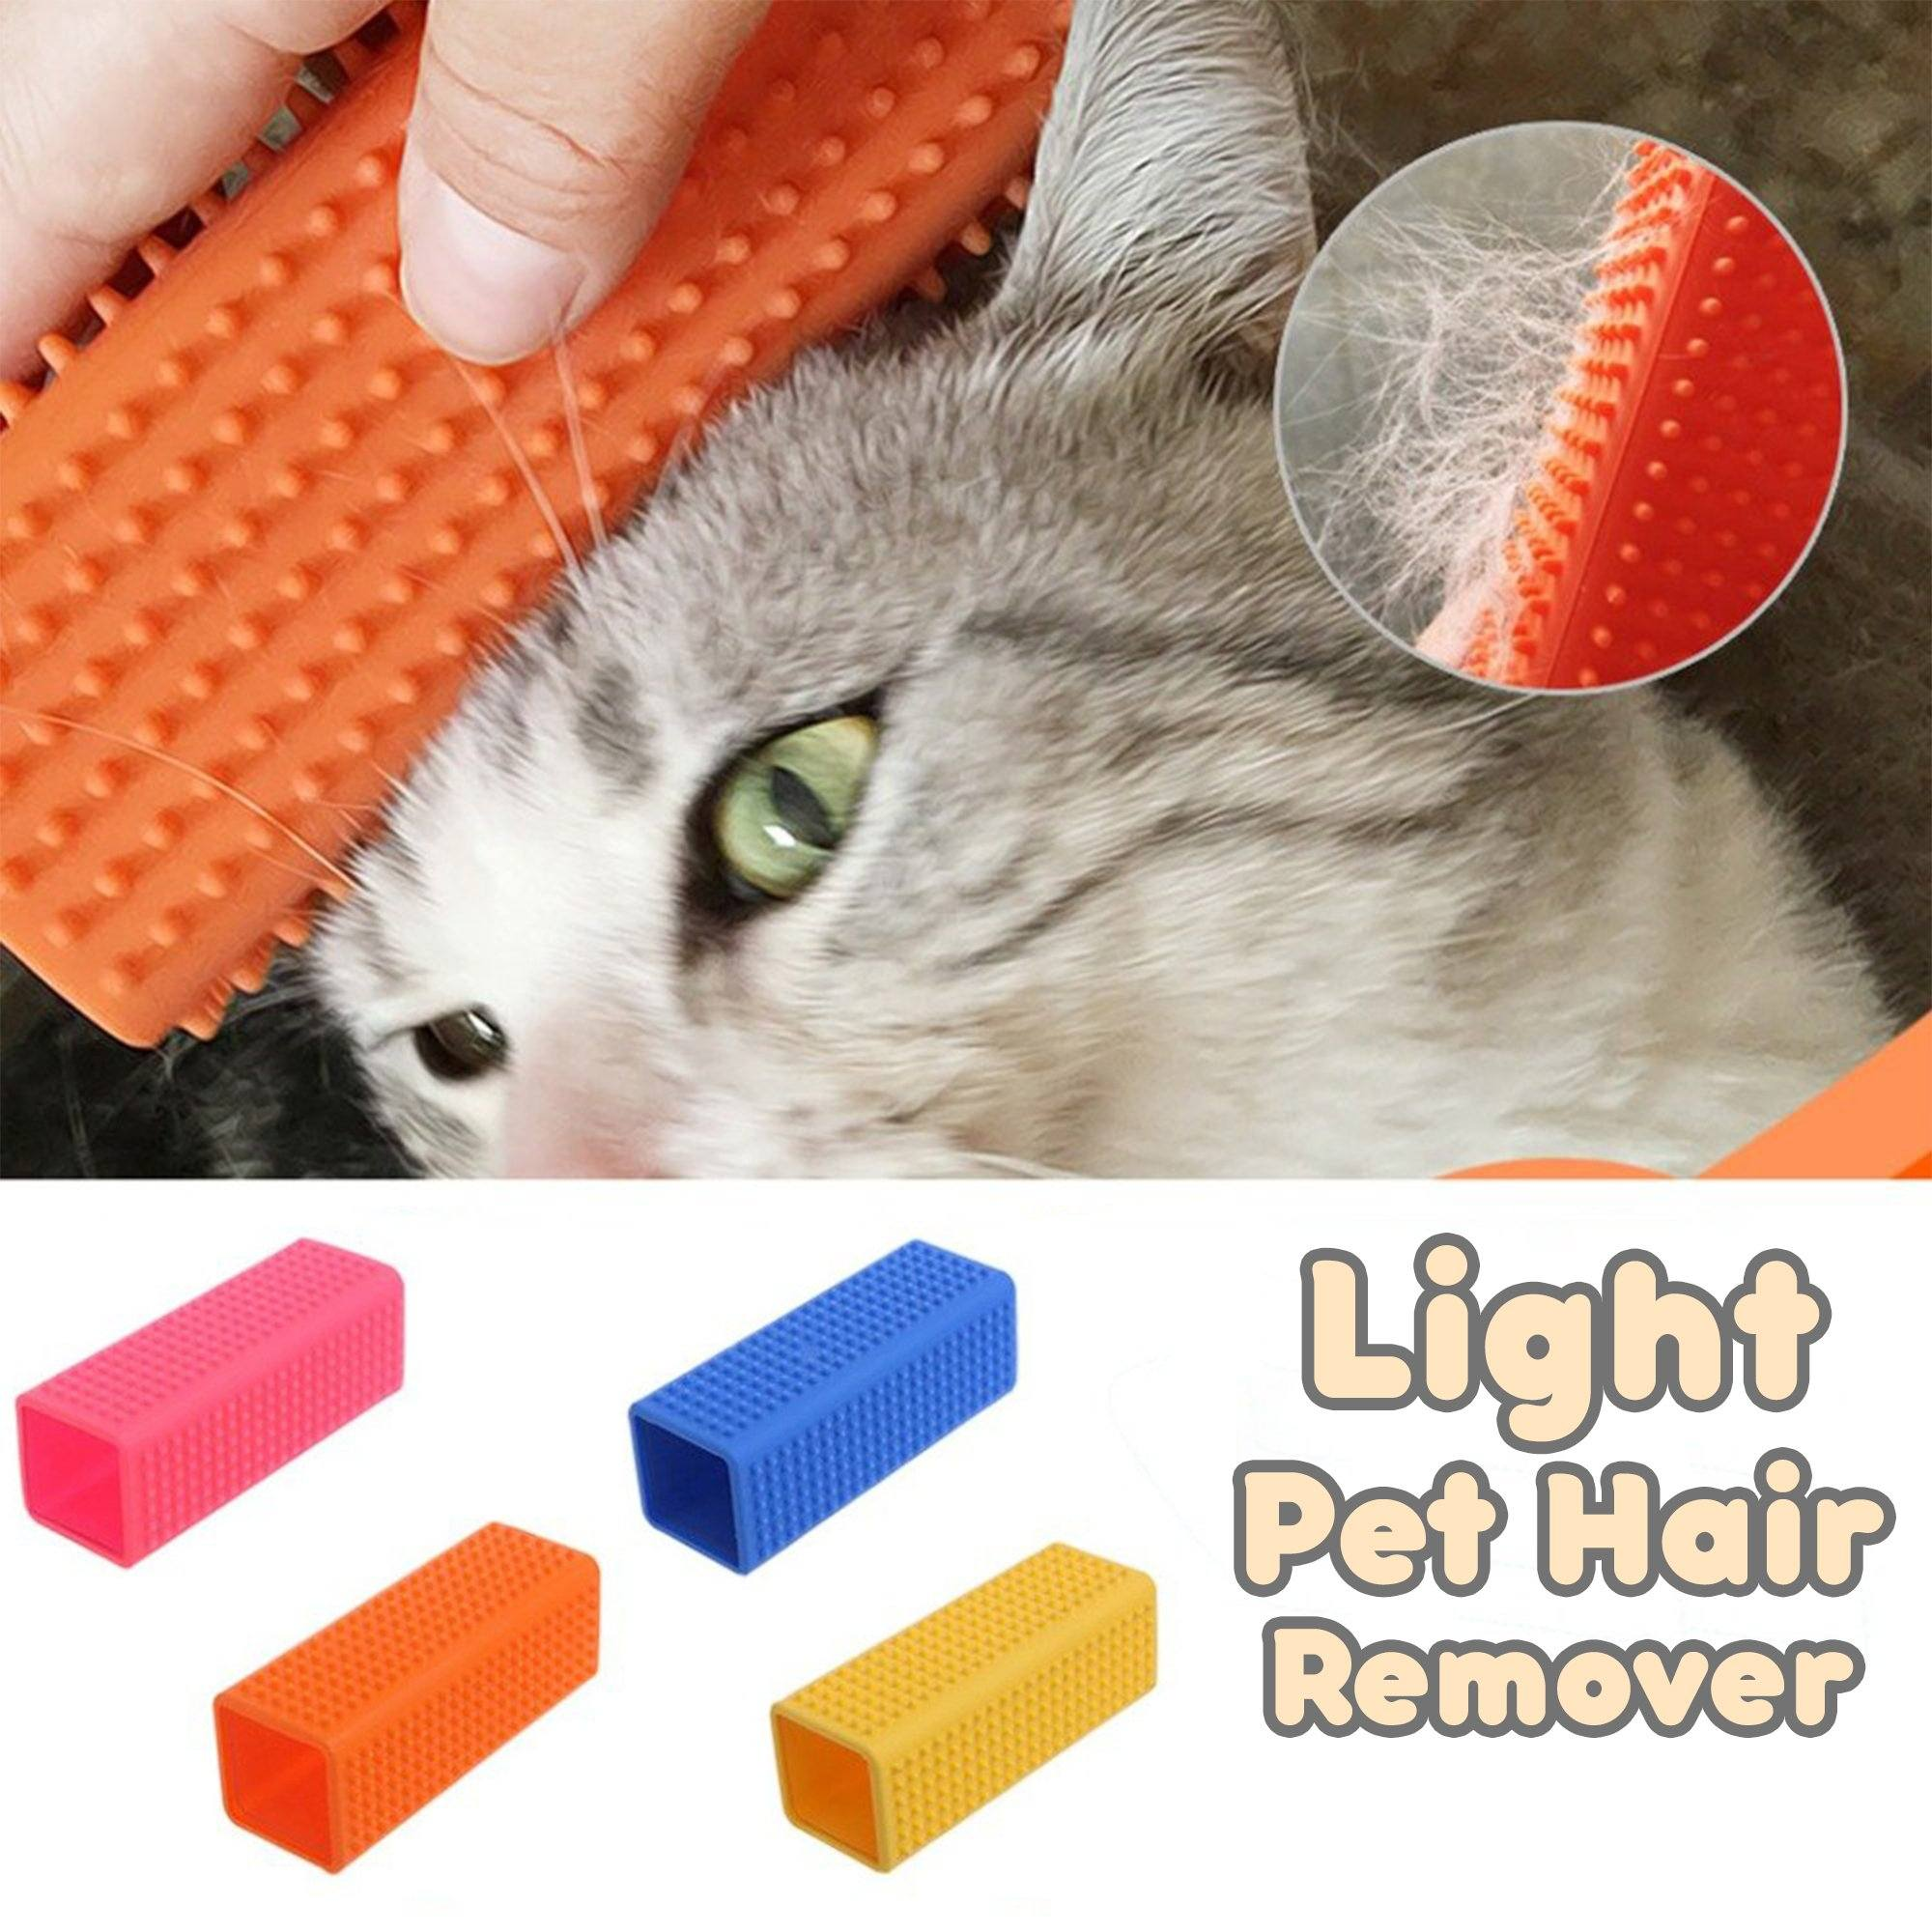 Light Pet Hair Remover